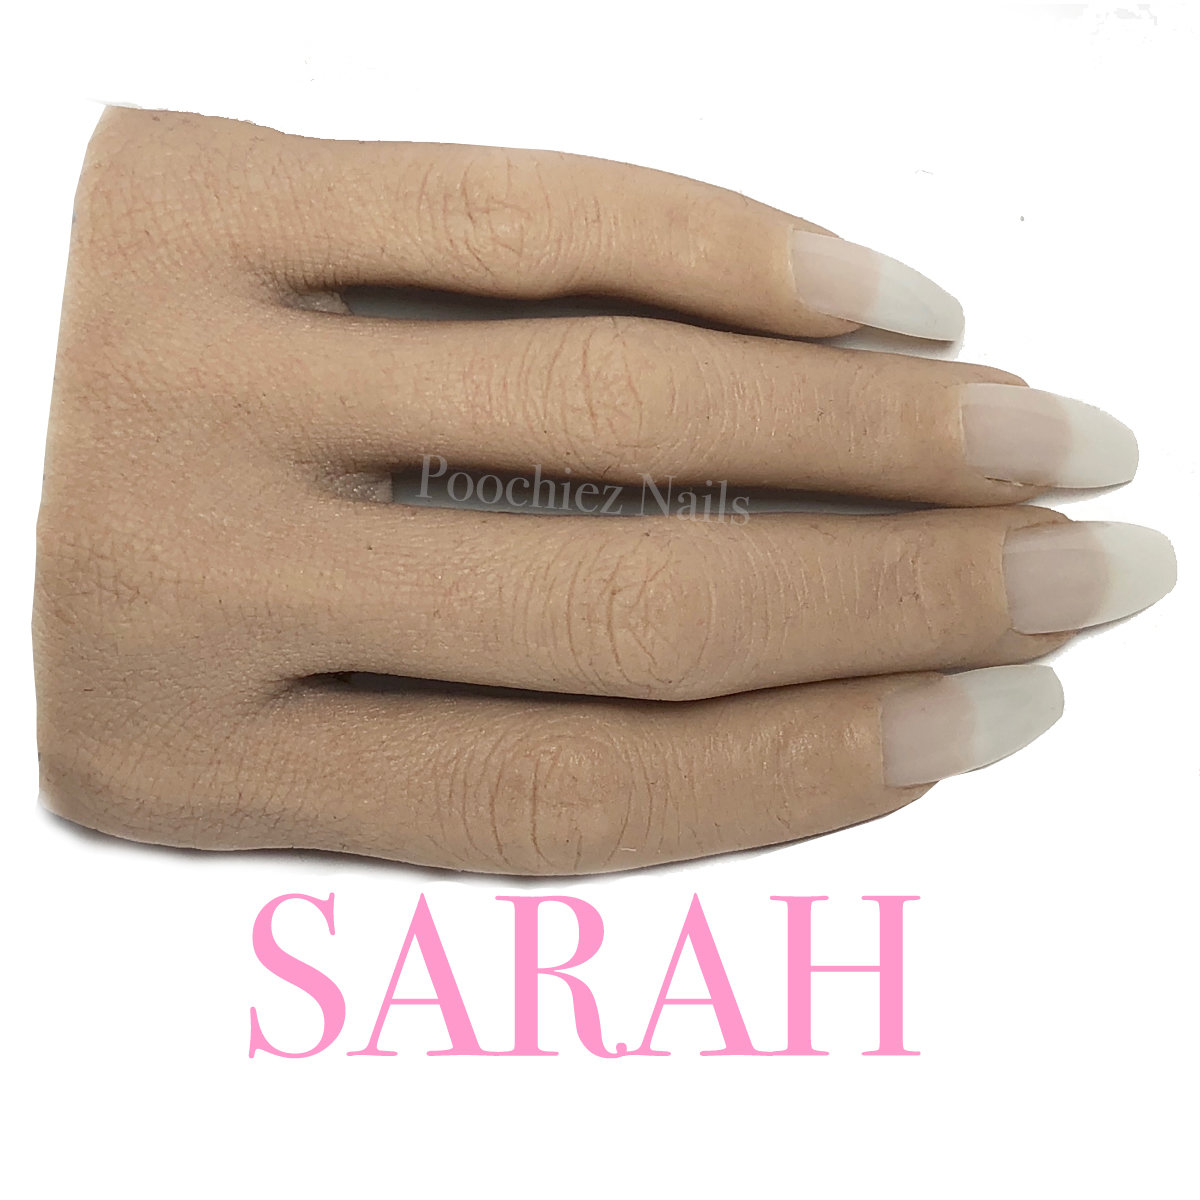 SARAH HALF REALISTIC PRACTICE HAND ( PLEASE READ THE DIRECTIONS & WATCH THE VIDEOS BELOW) WILL TAKE 5-8 DAYS TO PROCESS.